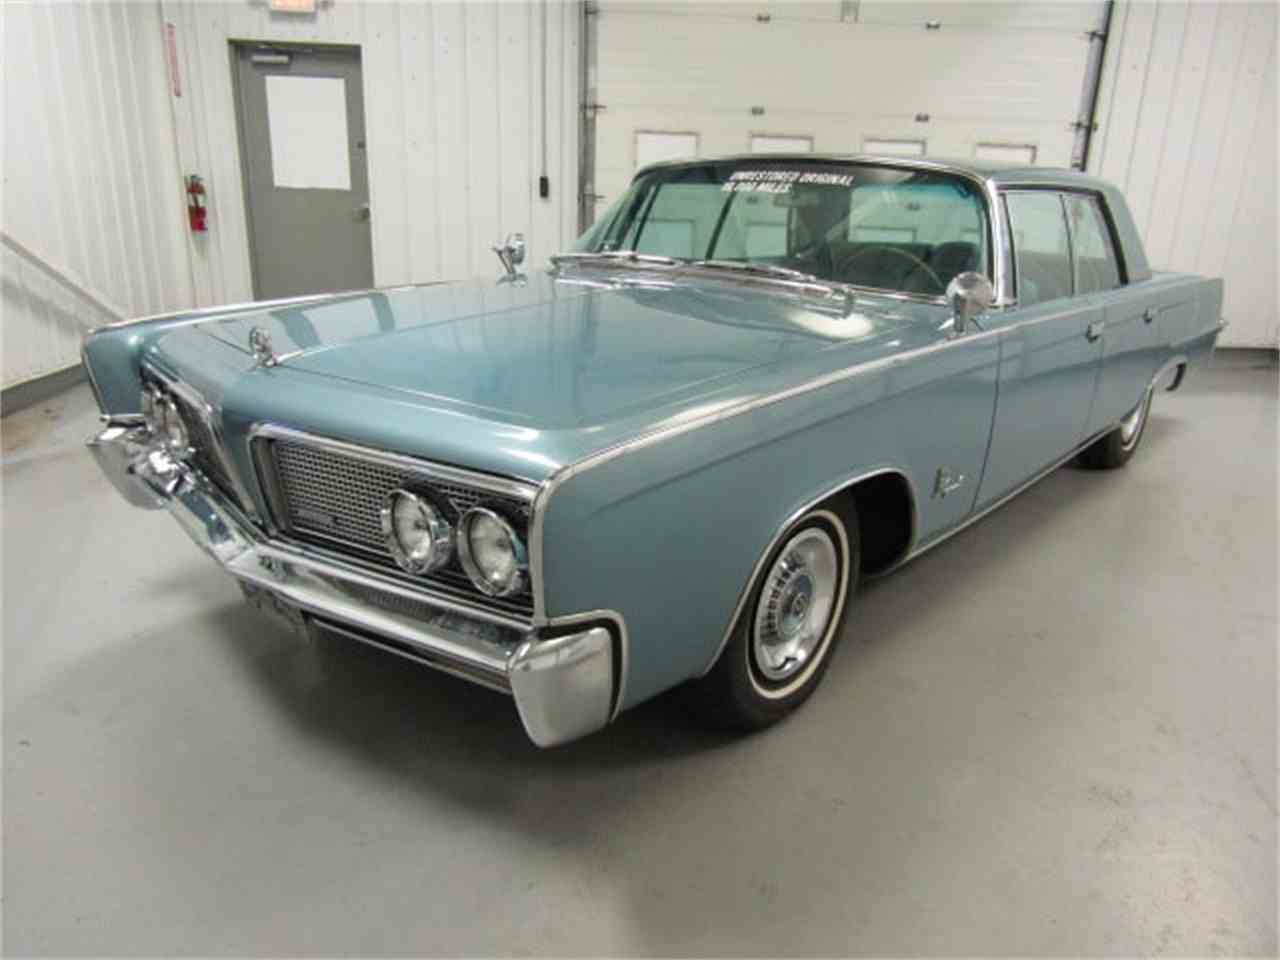 Large Picture of '64 Chrysler Imperial - $21,970.00 - JLDR